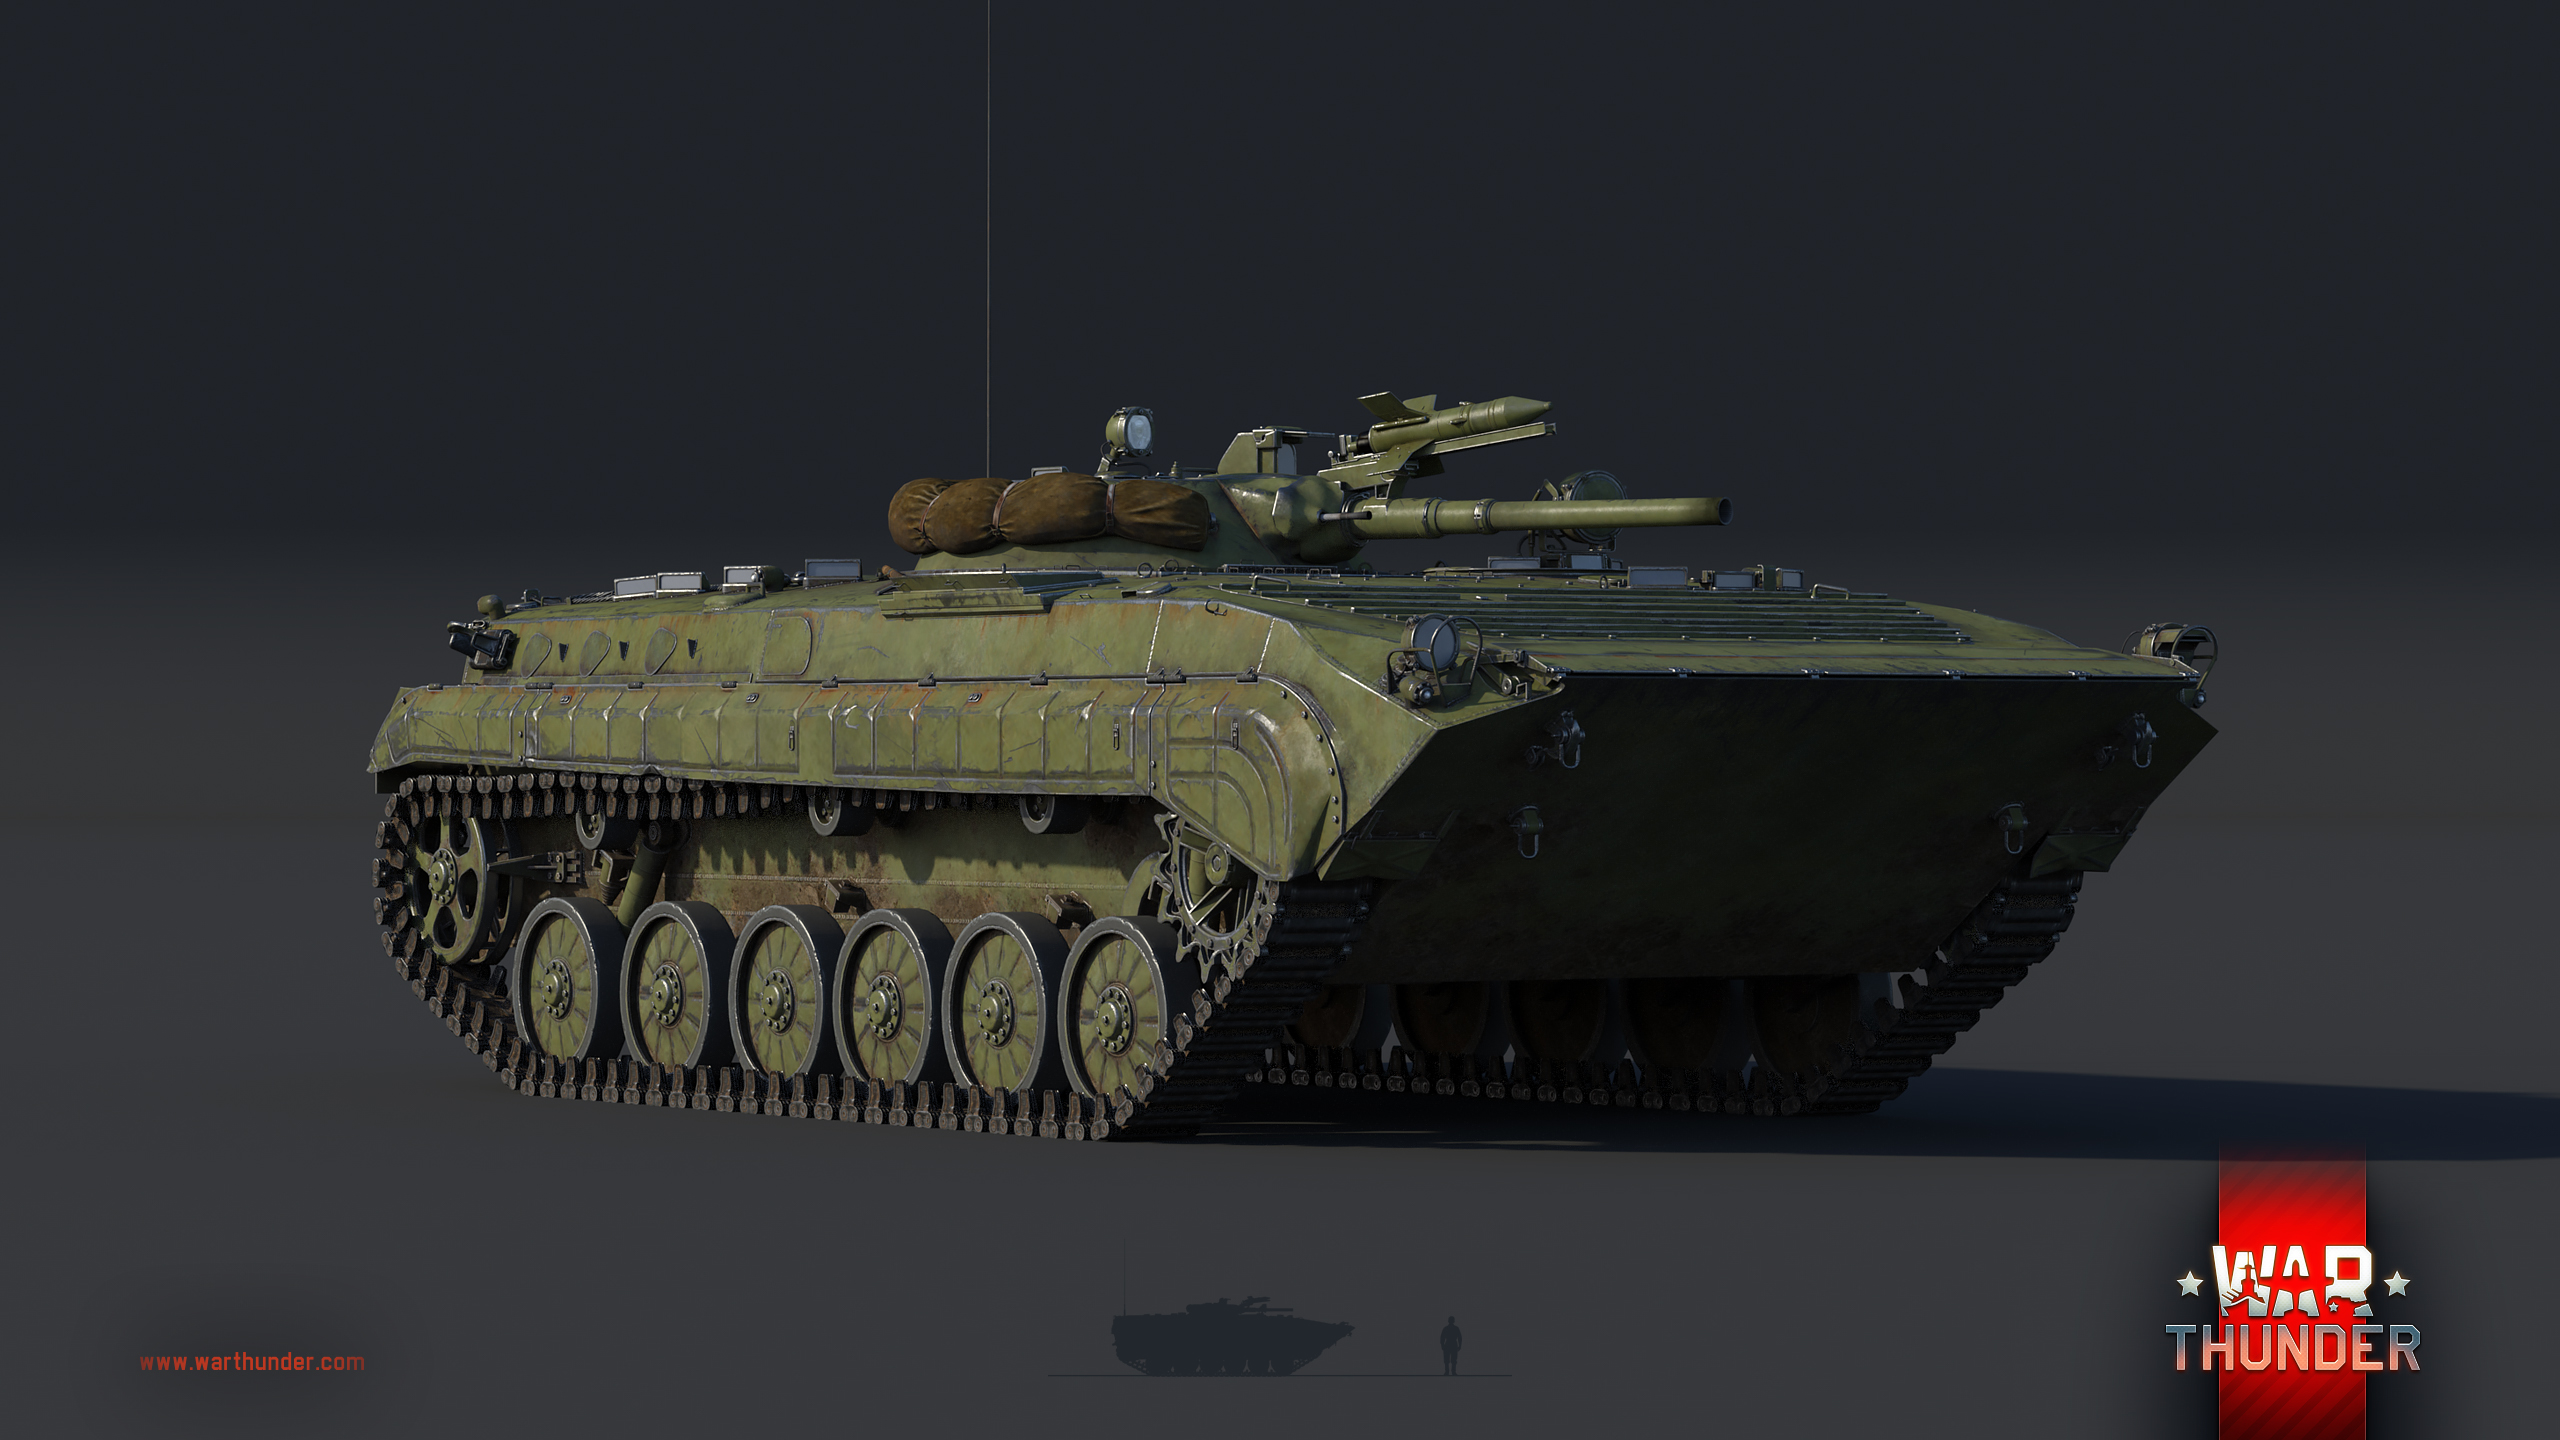 Development bmp 1 master of adaptation news war thunder download the wallpaper 1280x1024 1920x1080 2560x1440 publicscrutiny Choice Image